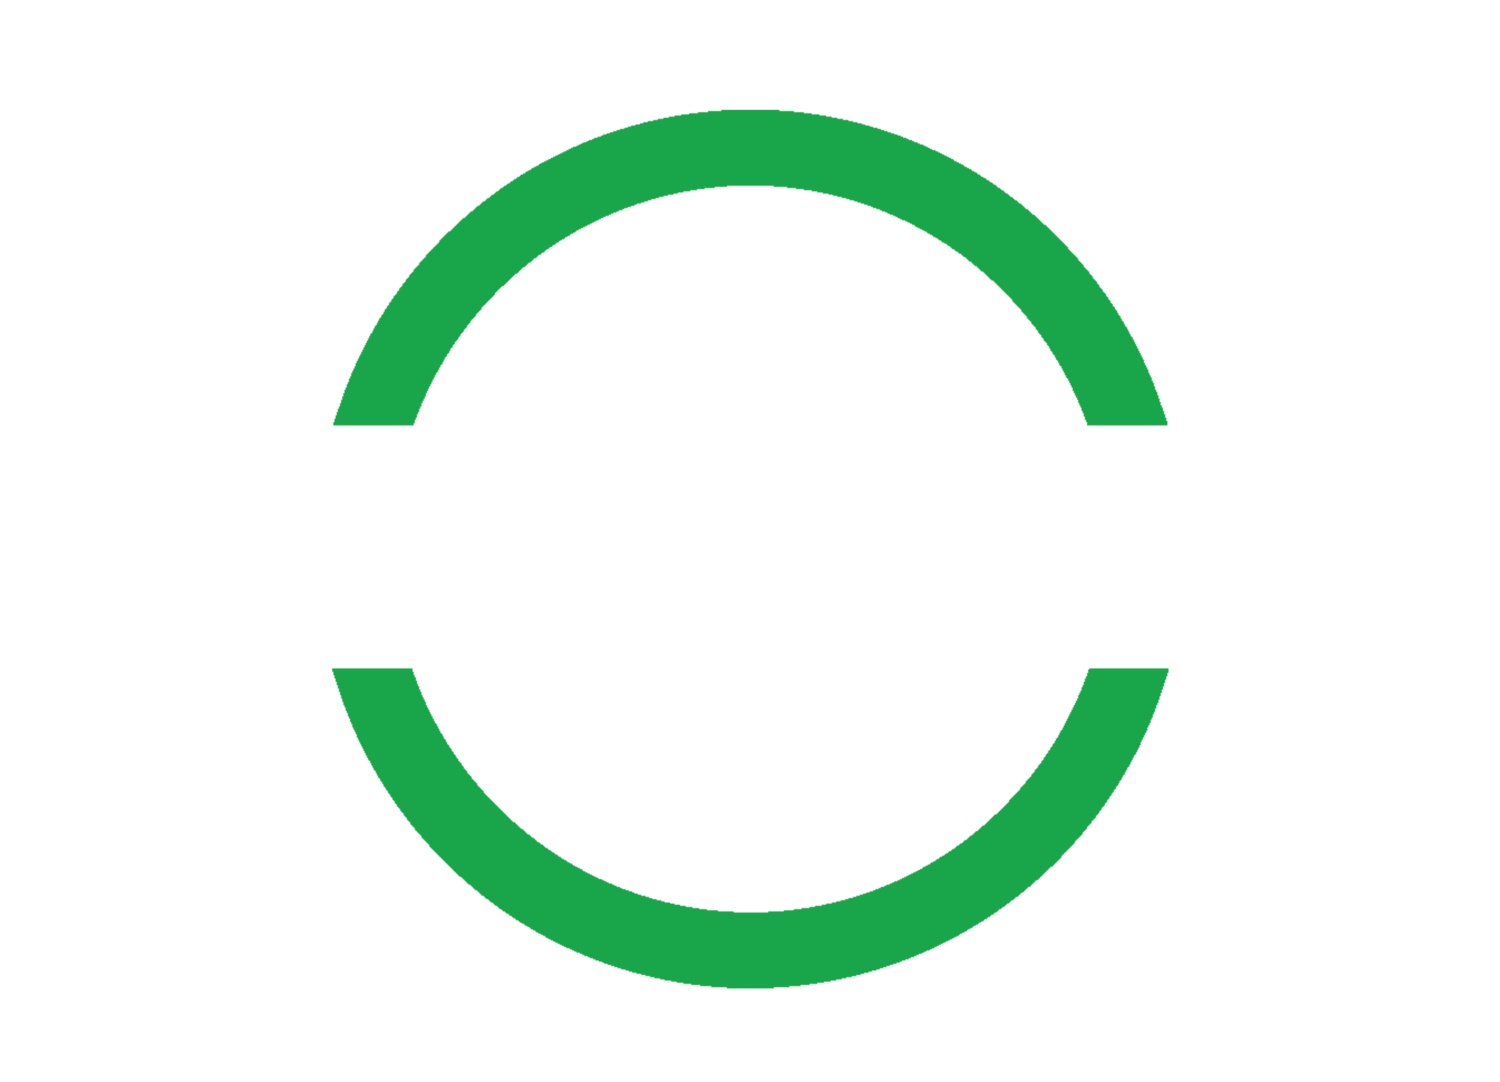 Philly Photo Studio